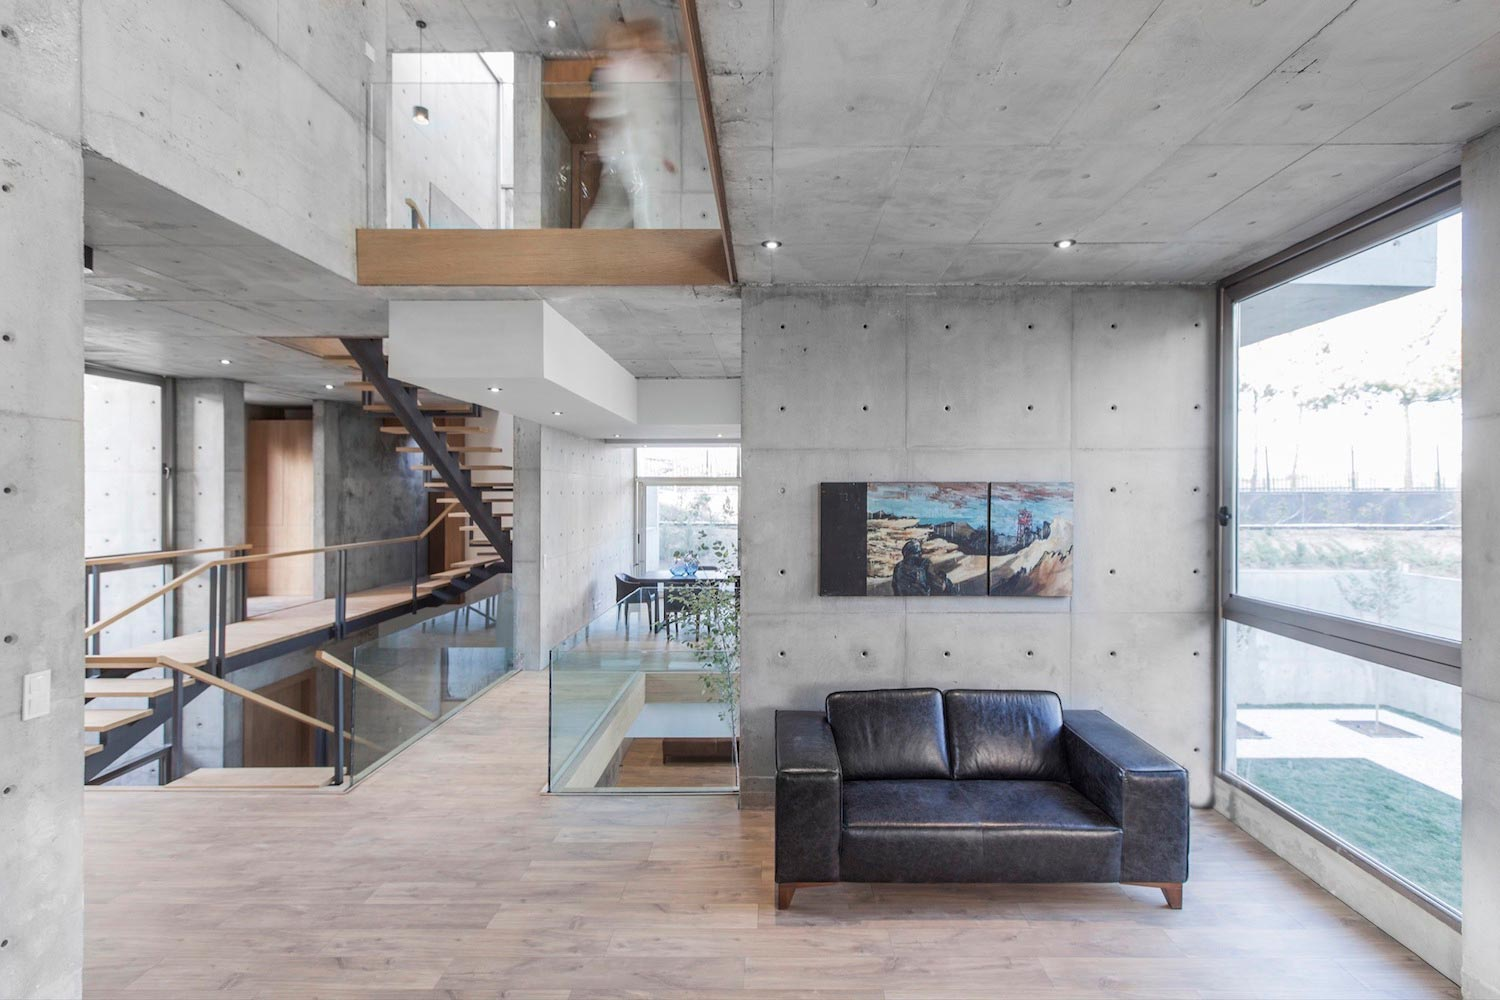 concrete-modern-home-sunken-courtyard-remain-protected-unseen-13 ...